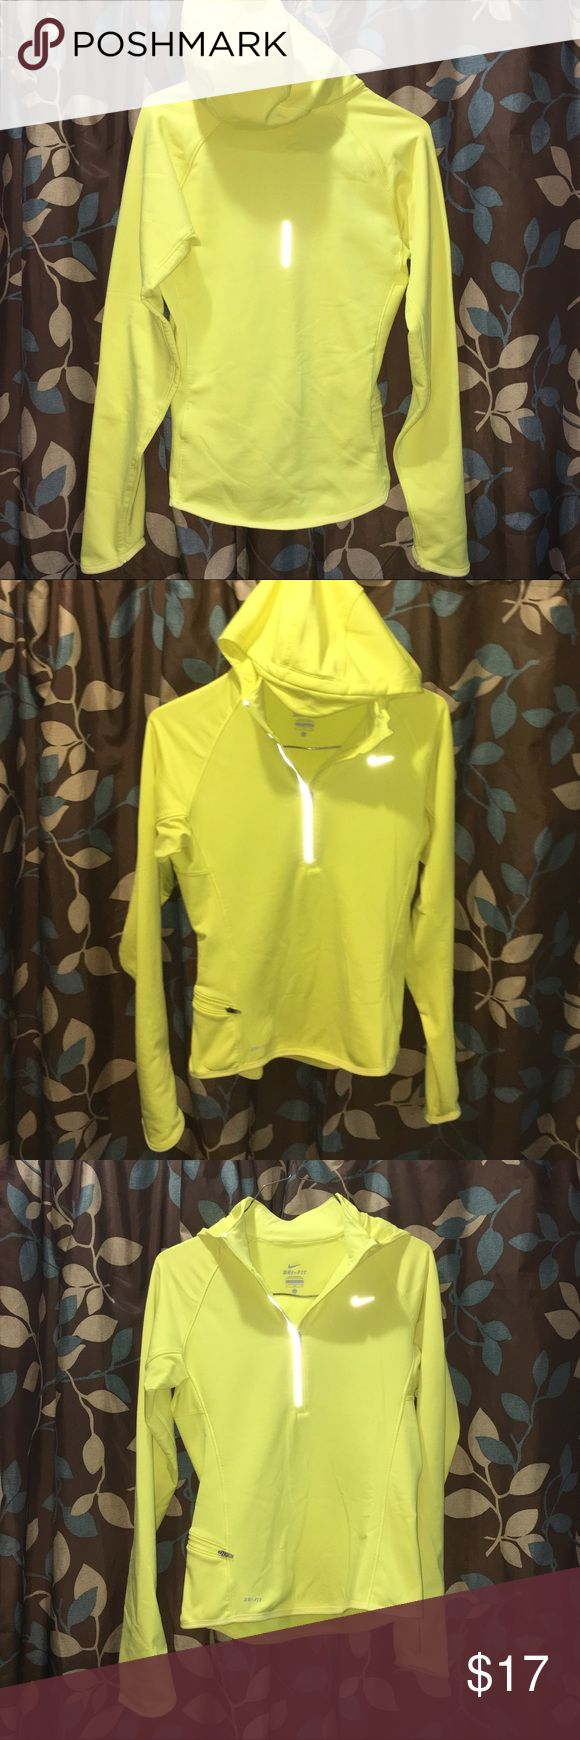 "Nike Reflecting Pullover Hoodie! Activewear Yellow Nike Pullover Hoodie! Reflecting! Perfect for outdoor activities like running, riding, etc. In Great Condition, Except there is some light stains on the Right Arm Sleeve ( mud I believe) & also what looks like a Pen mark on the Front, same. Women's Size Small. I am including measurements, Please make sure this will fit before purchasing. Laying Flat Unstretched from Armpit to Armpit is 17 1/2"". From top of Shoulder to Bottom Hem: Front is…"